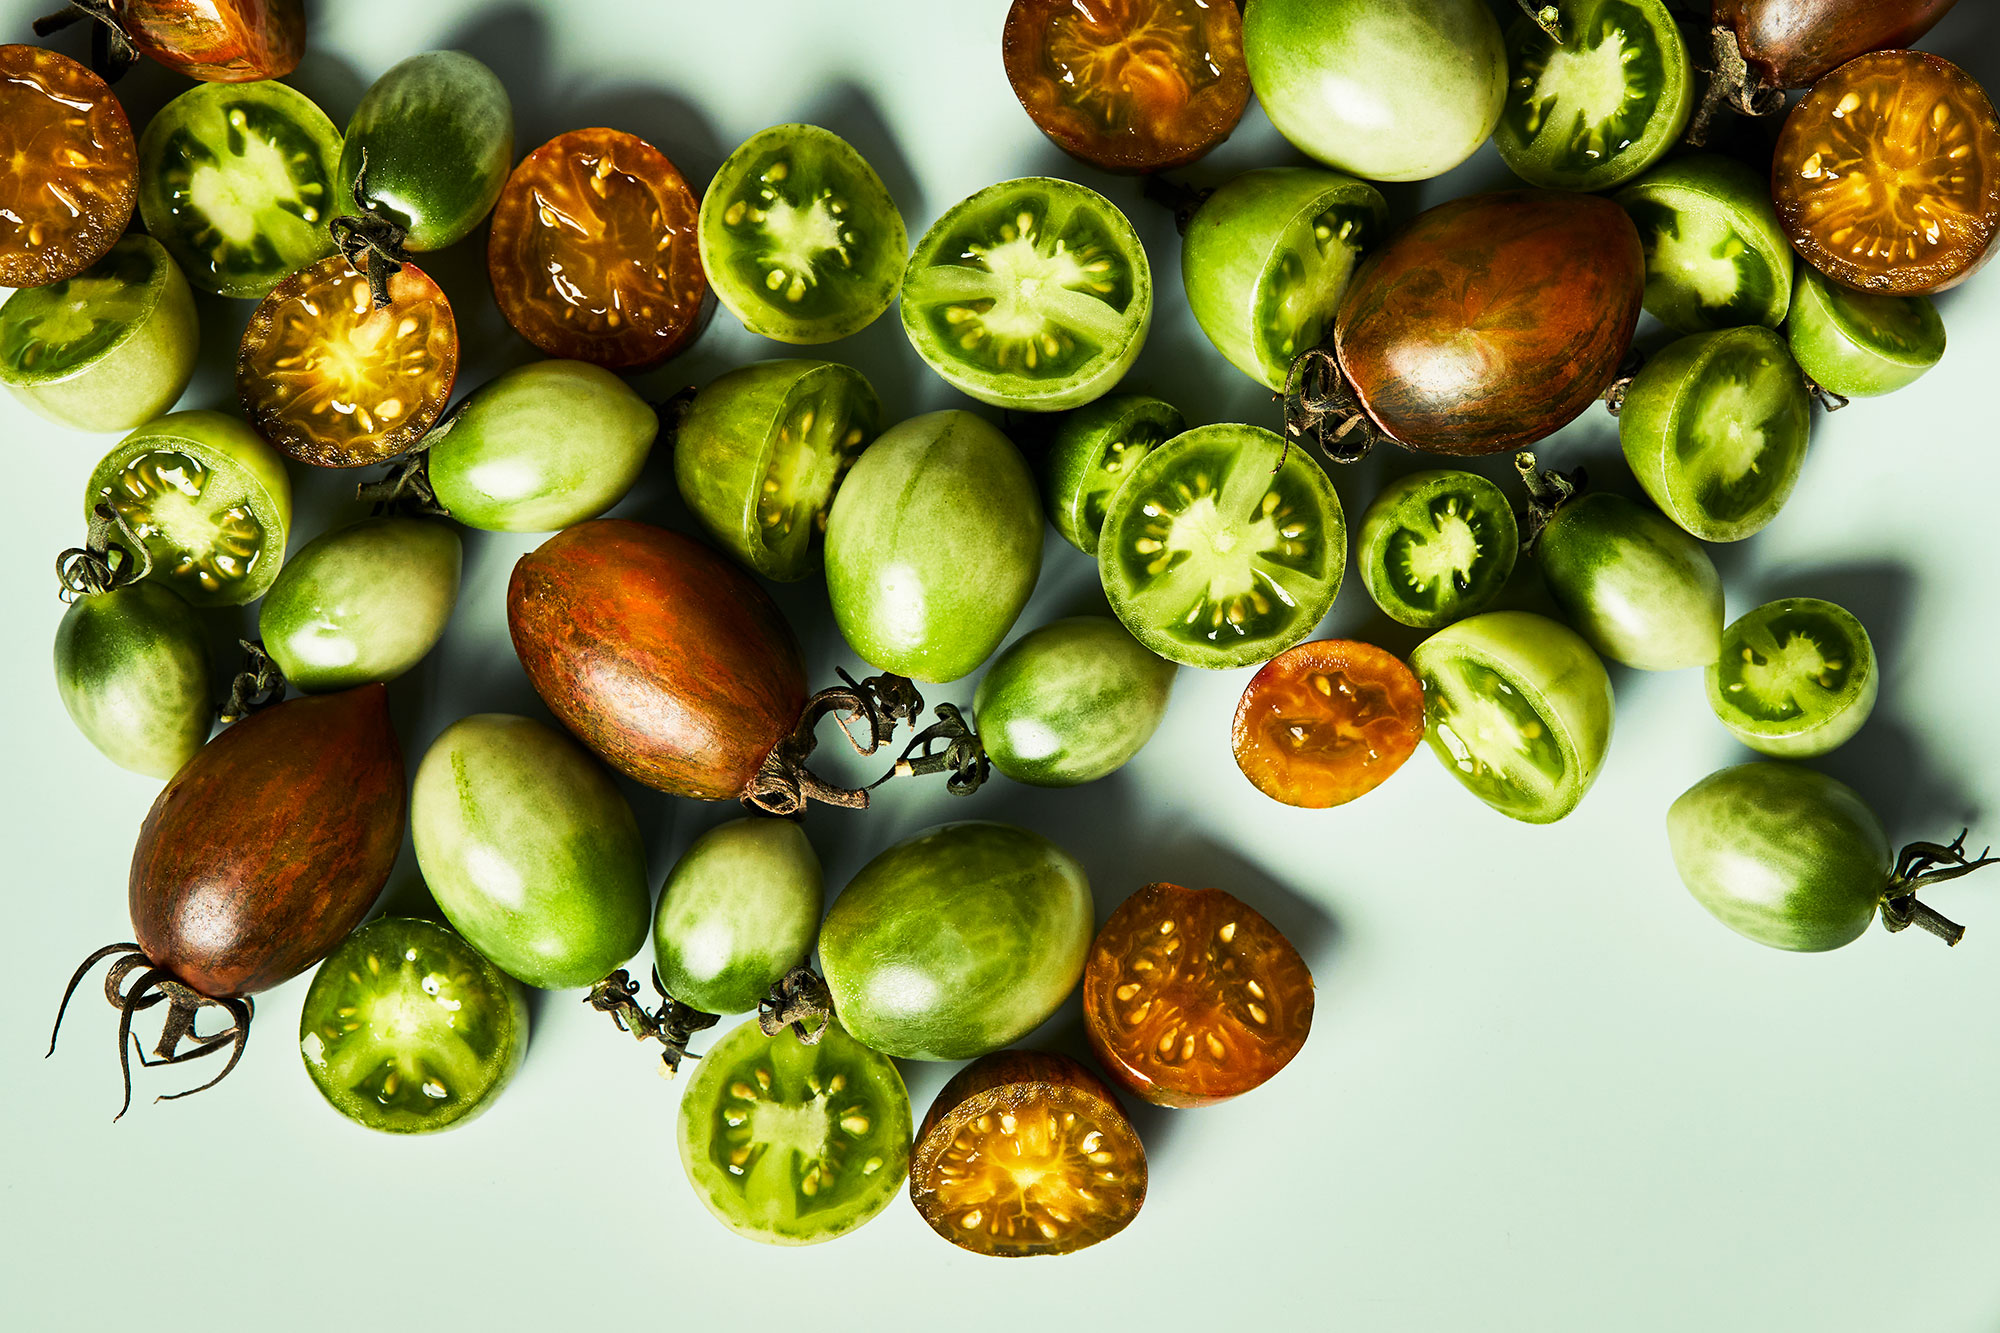 Sweet Jade Tomatoes and Atomic Tomatoes